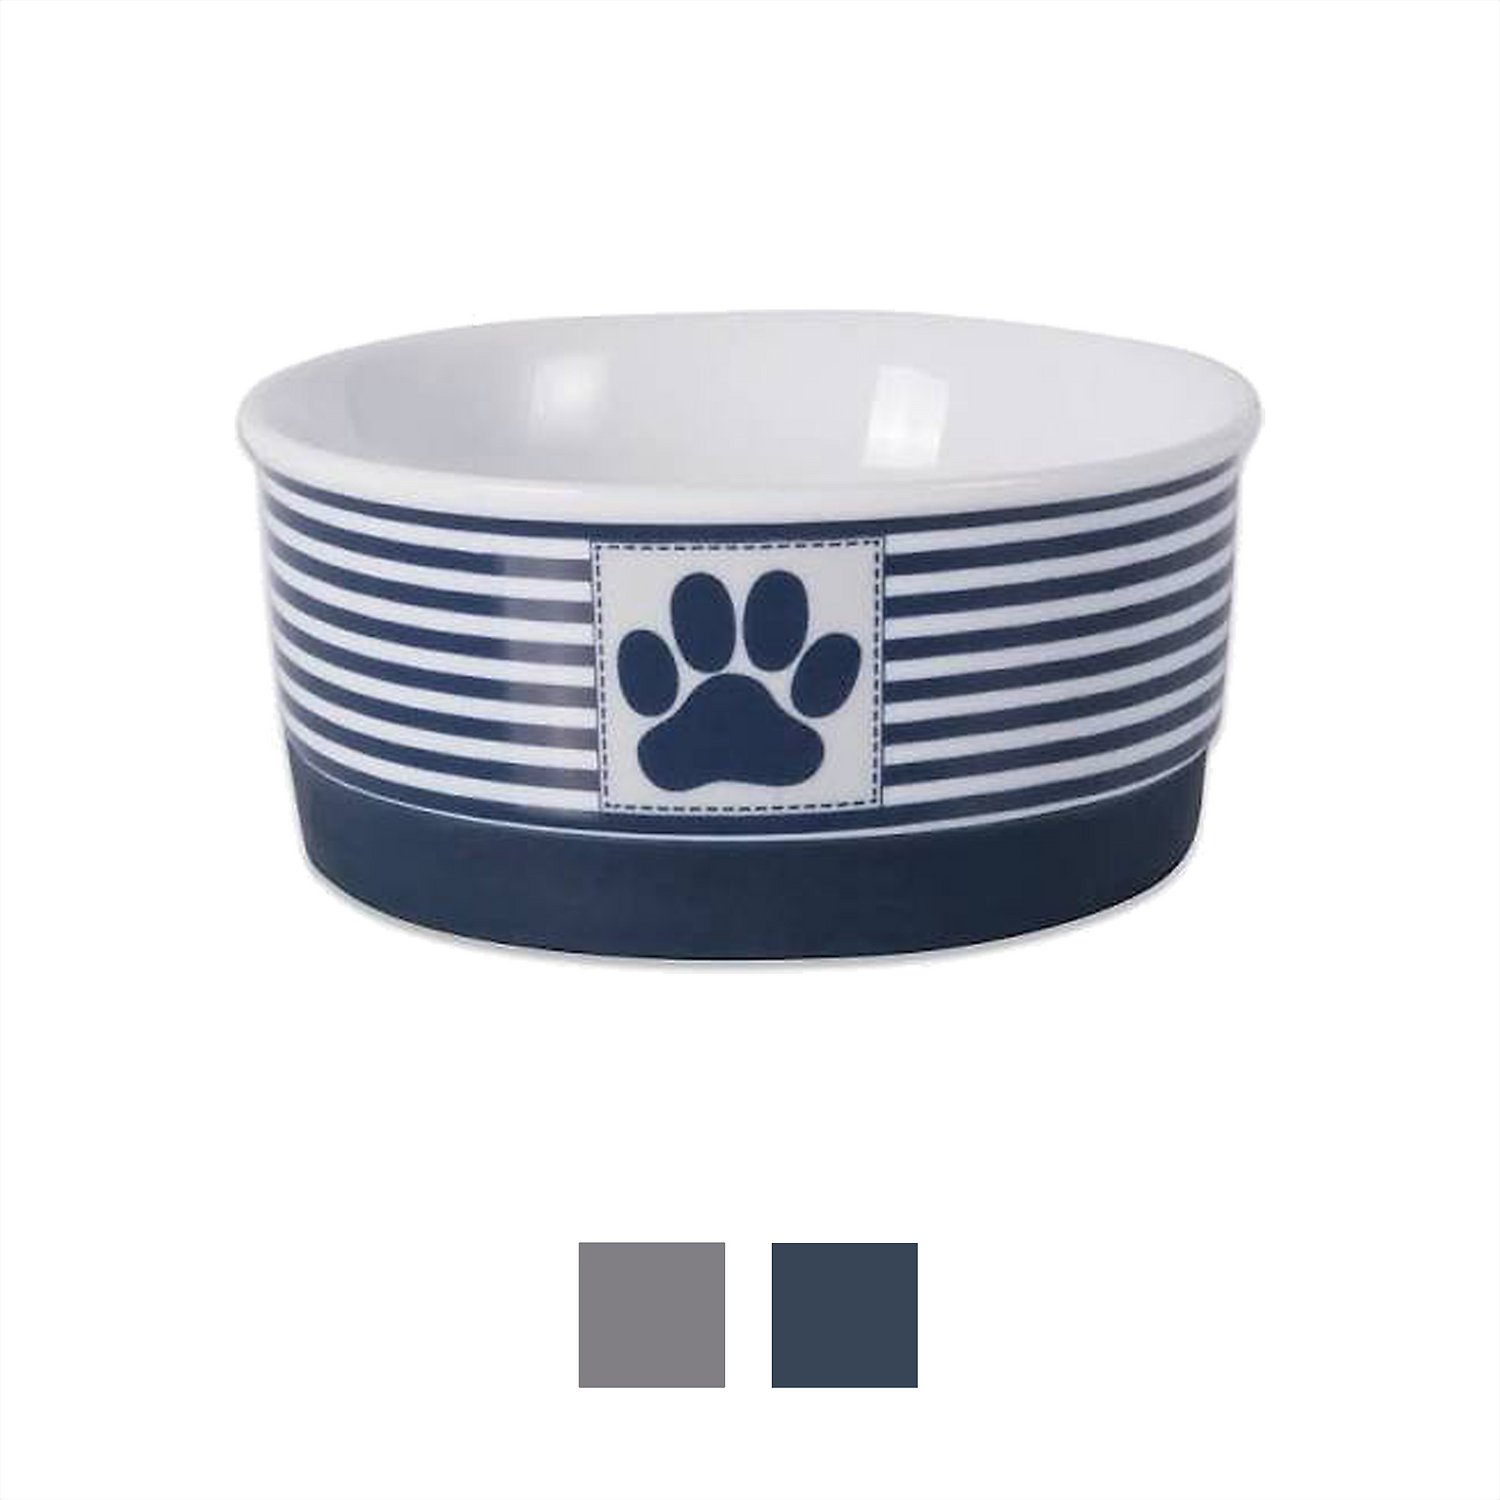 Dishes, Feeders & Fountains Cat Supplies Beautiful Travel Bowl 2 In 1 Bowl Model For Dogs And Cats Fuss-dog